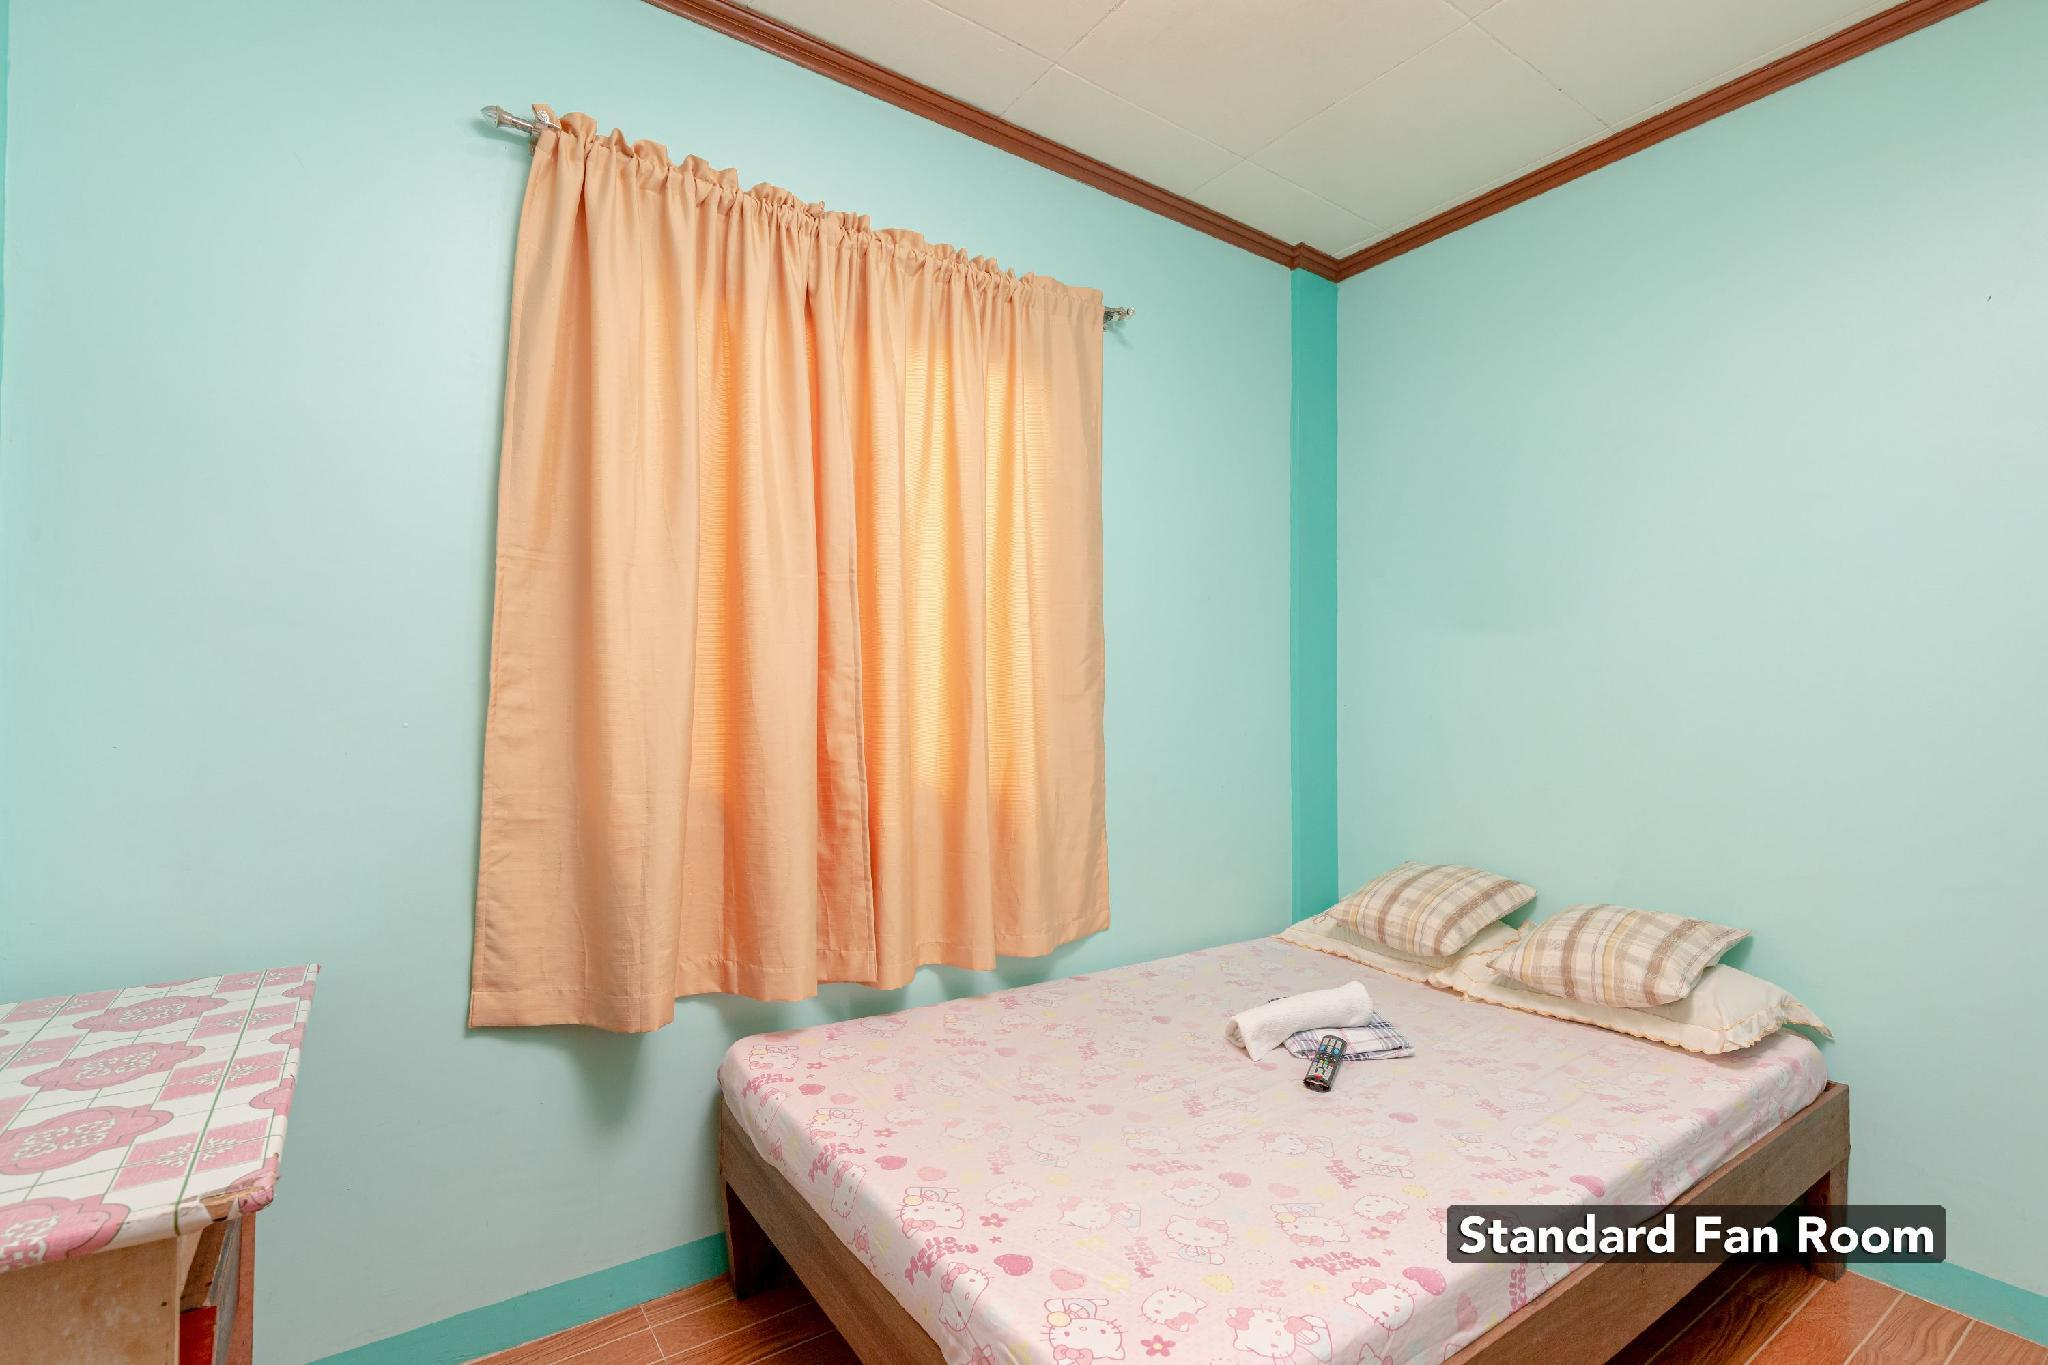 Mar Ermino's Room for Rent Tagaytay